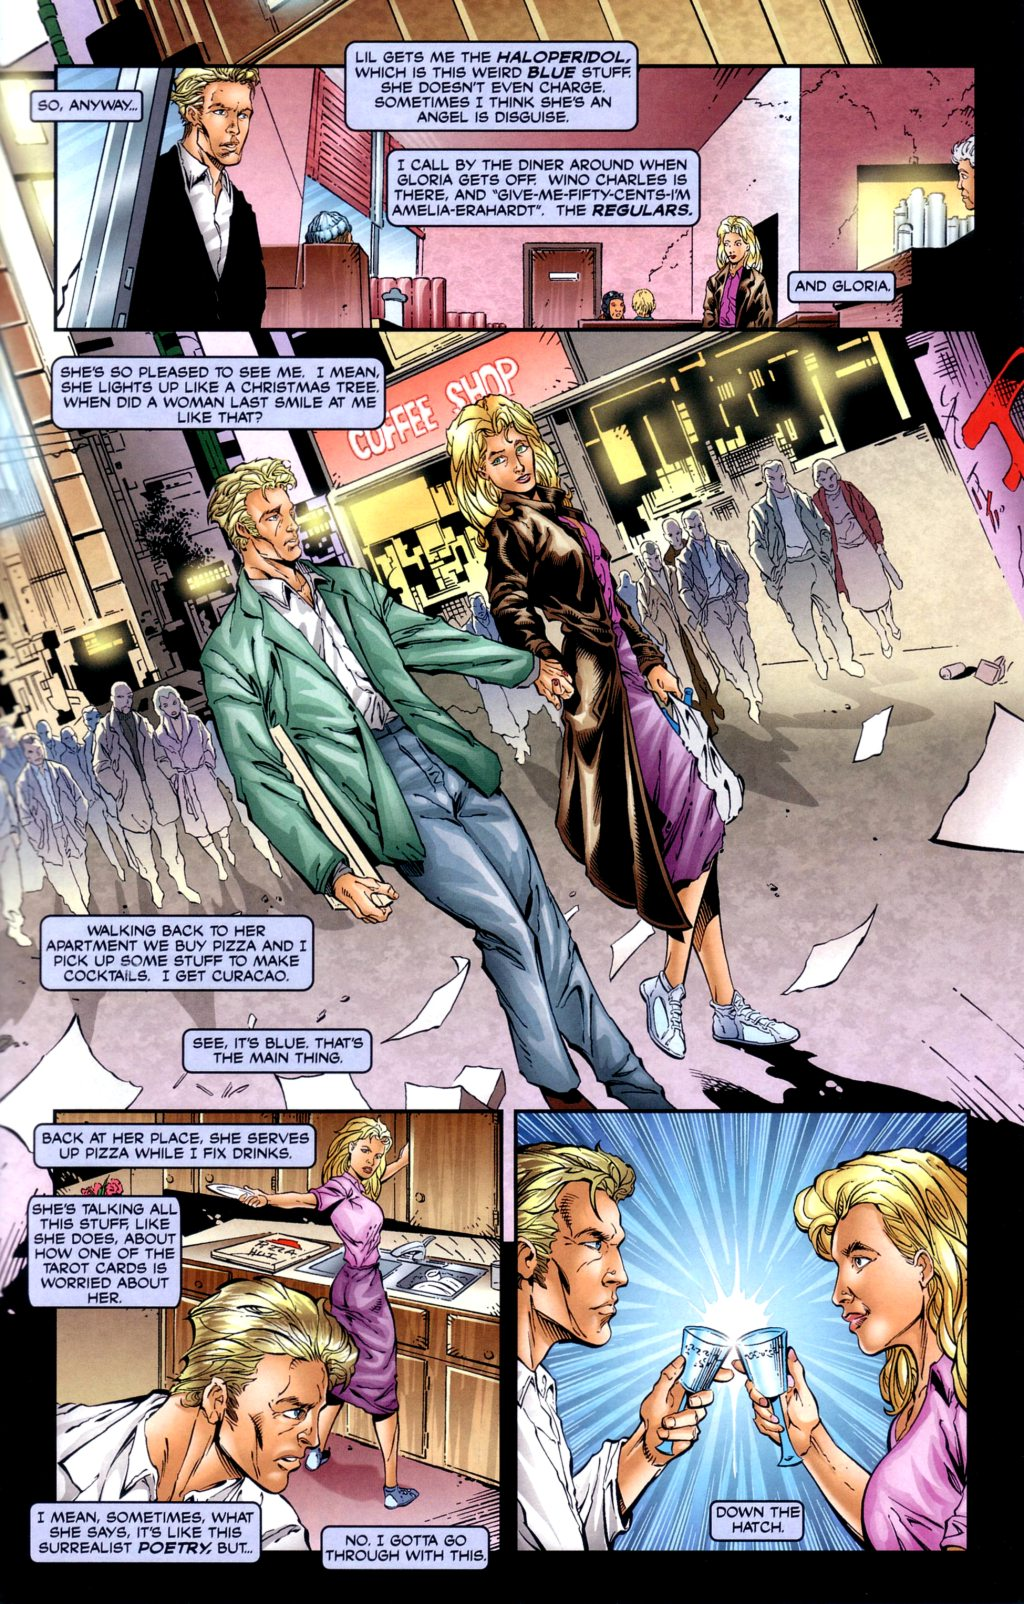 Read online Alan Moore's Glory comic -  Issue #2 - 21